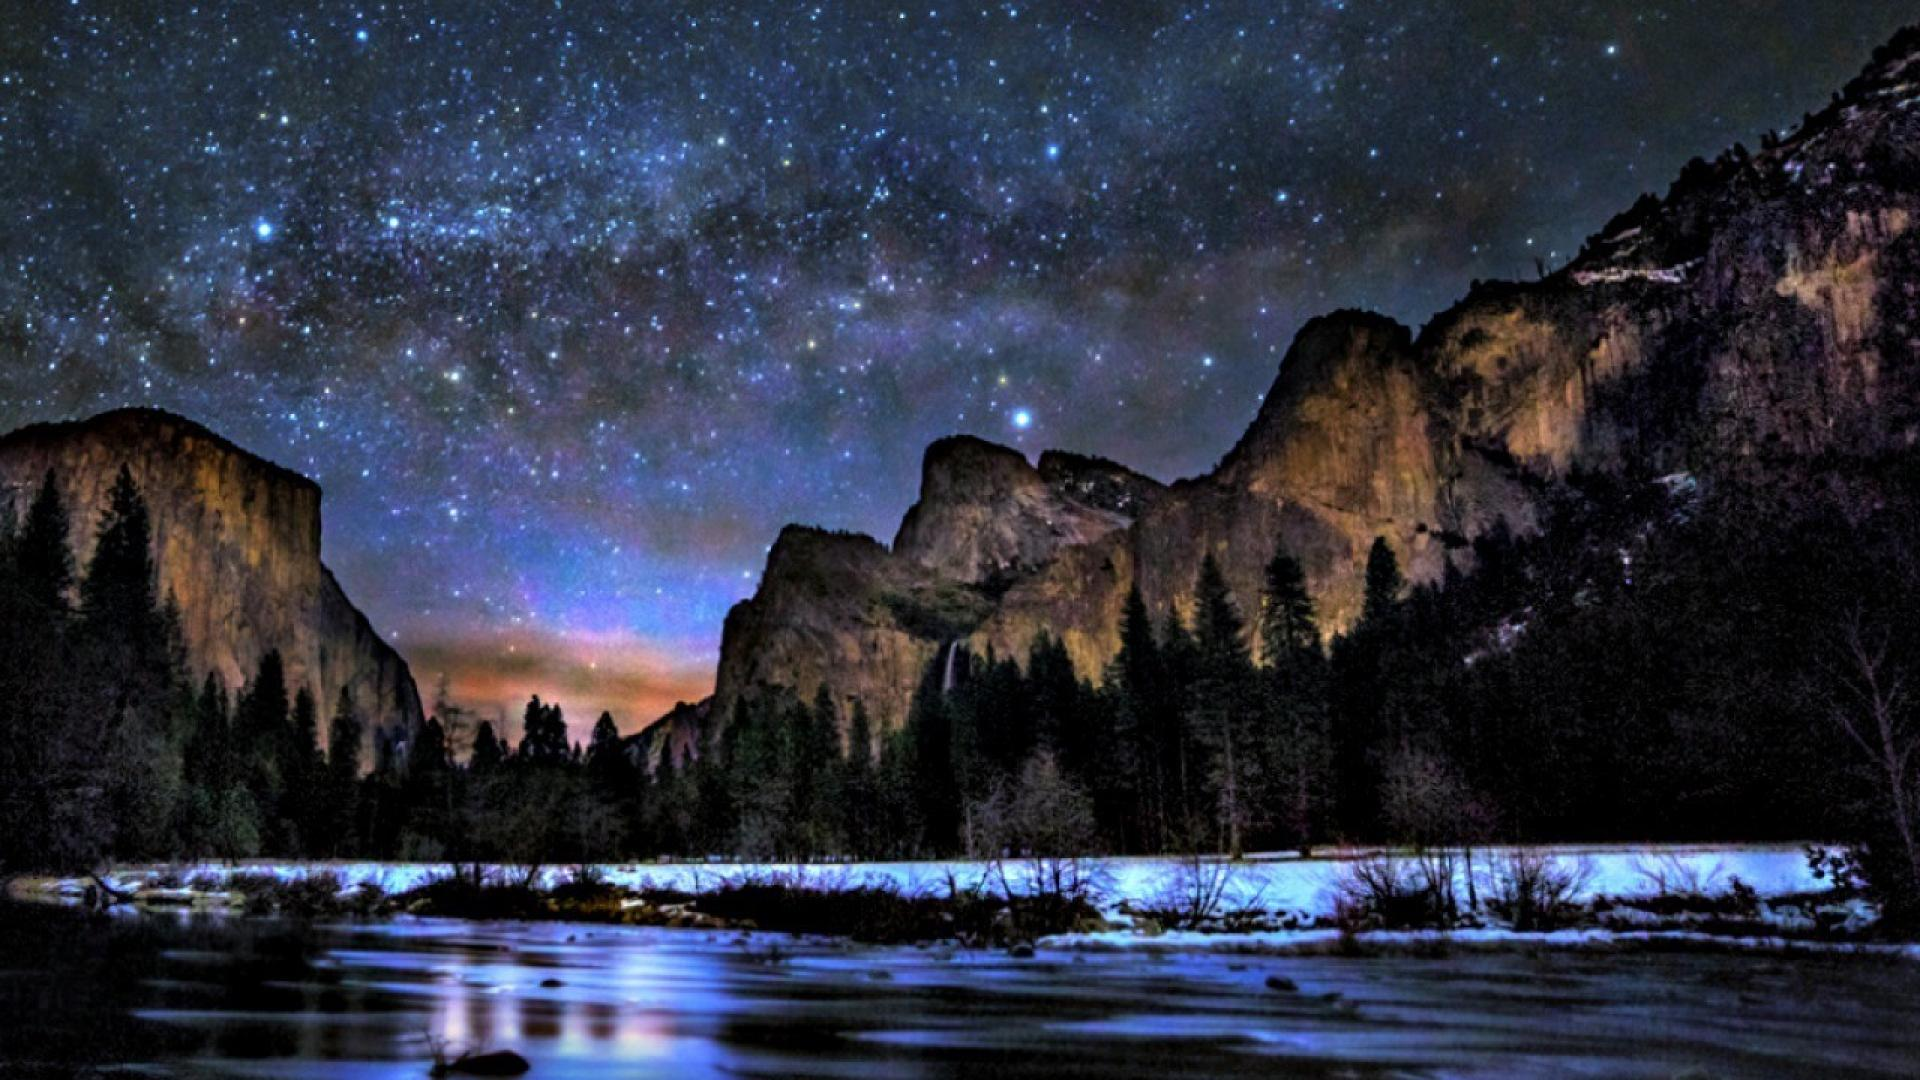 Way peaceful sky lovely yosemite national park wallpaper | (65833 ...